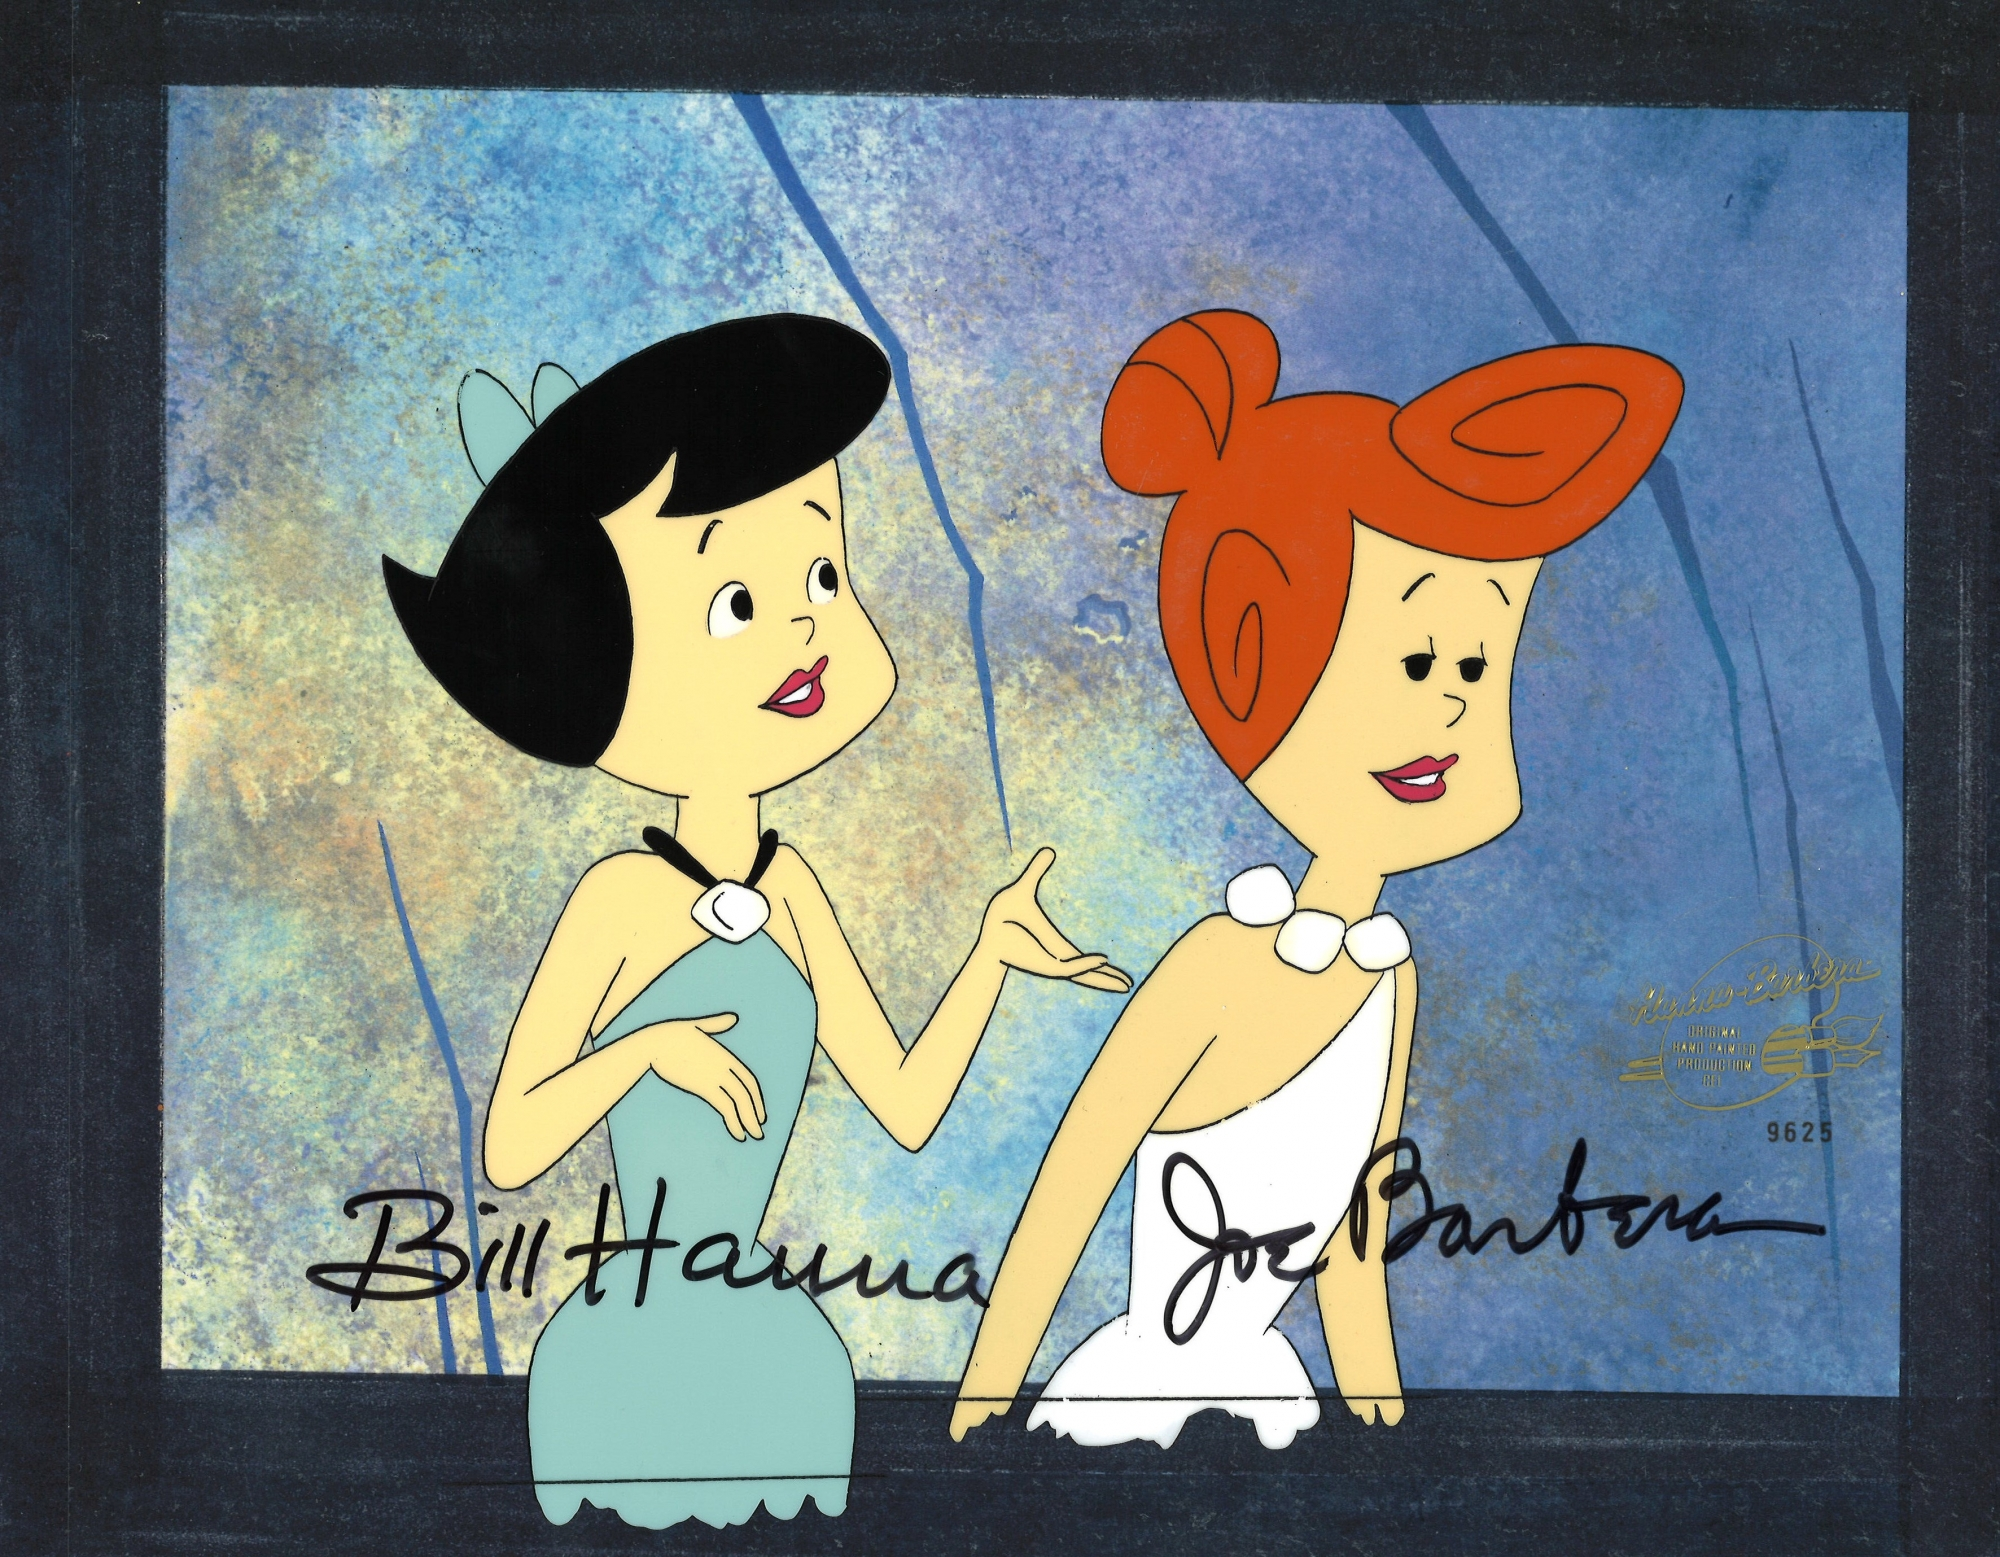 Wilma flintstone and betty rubble